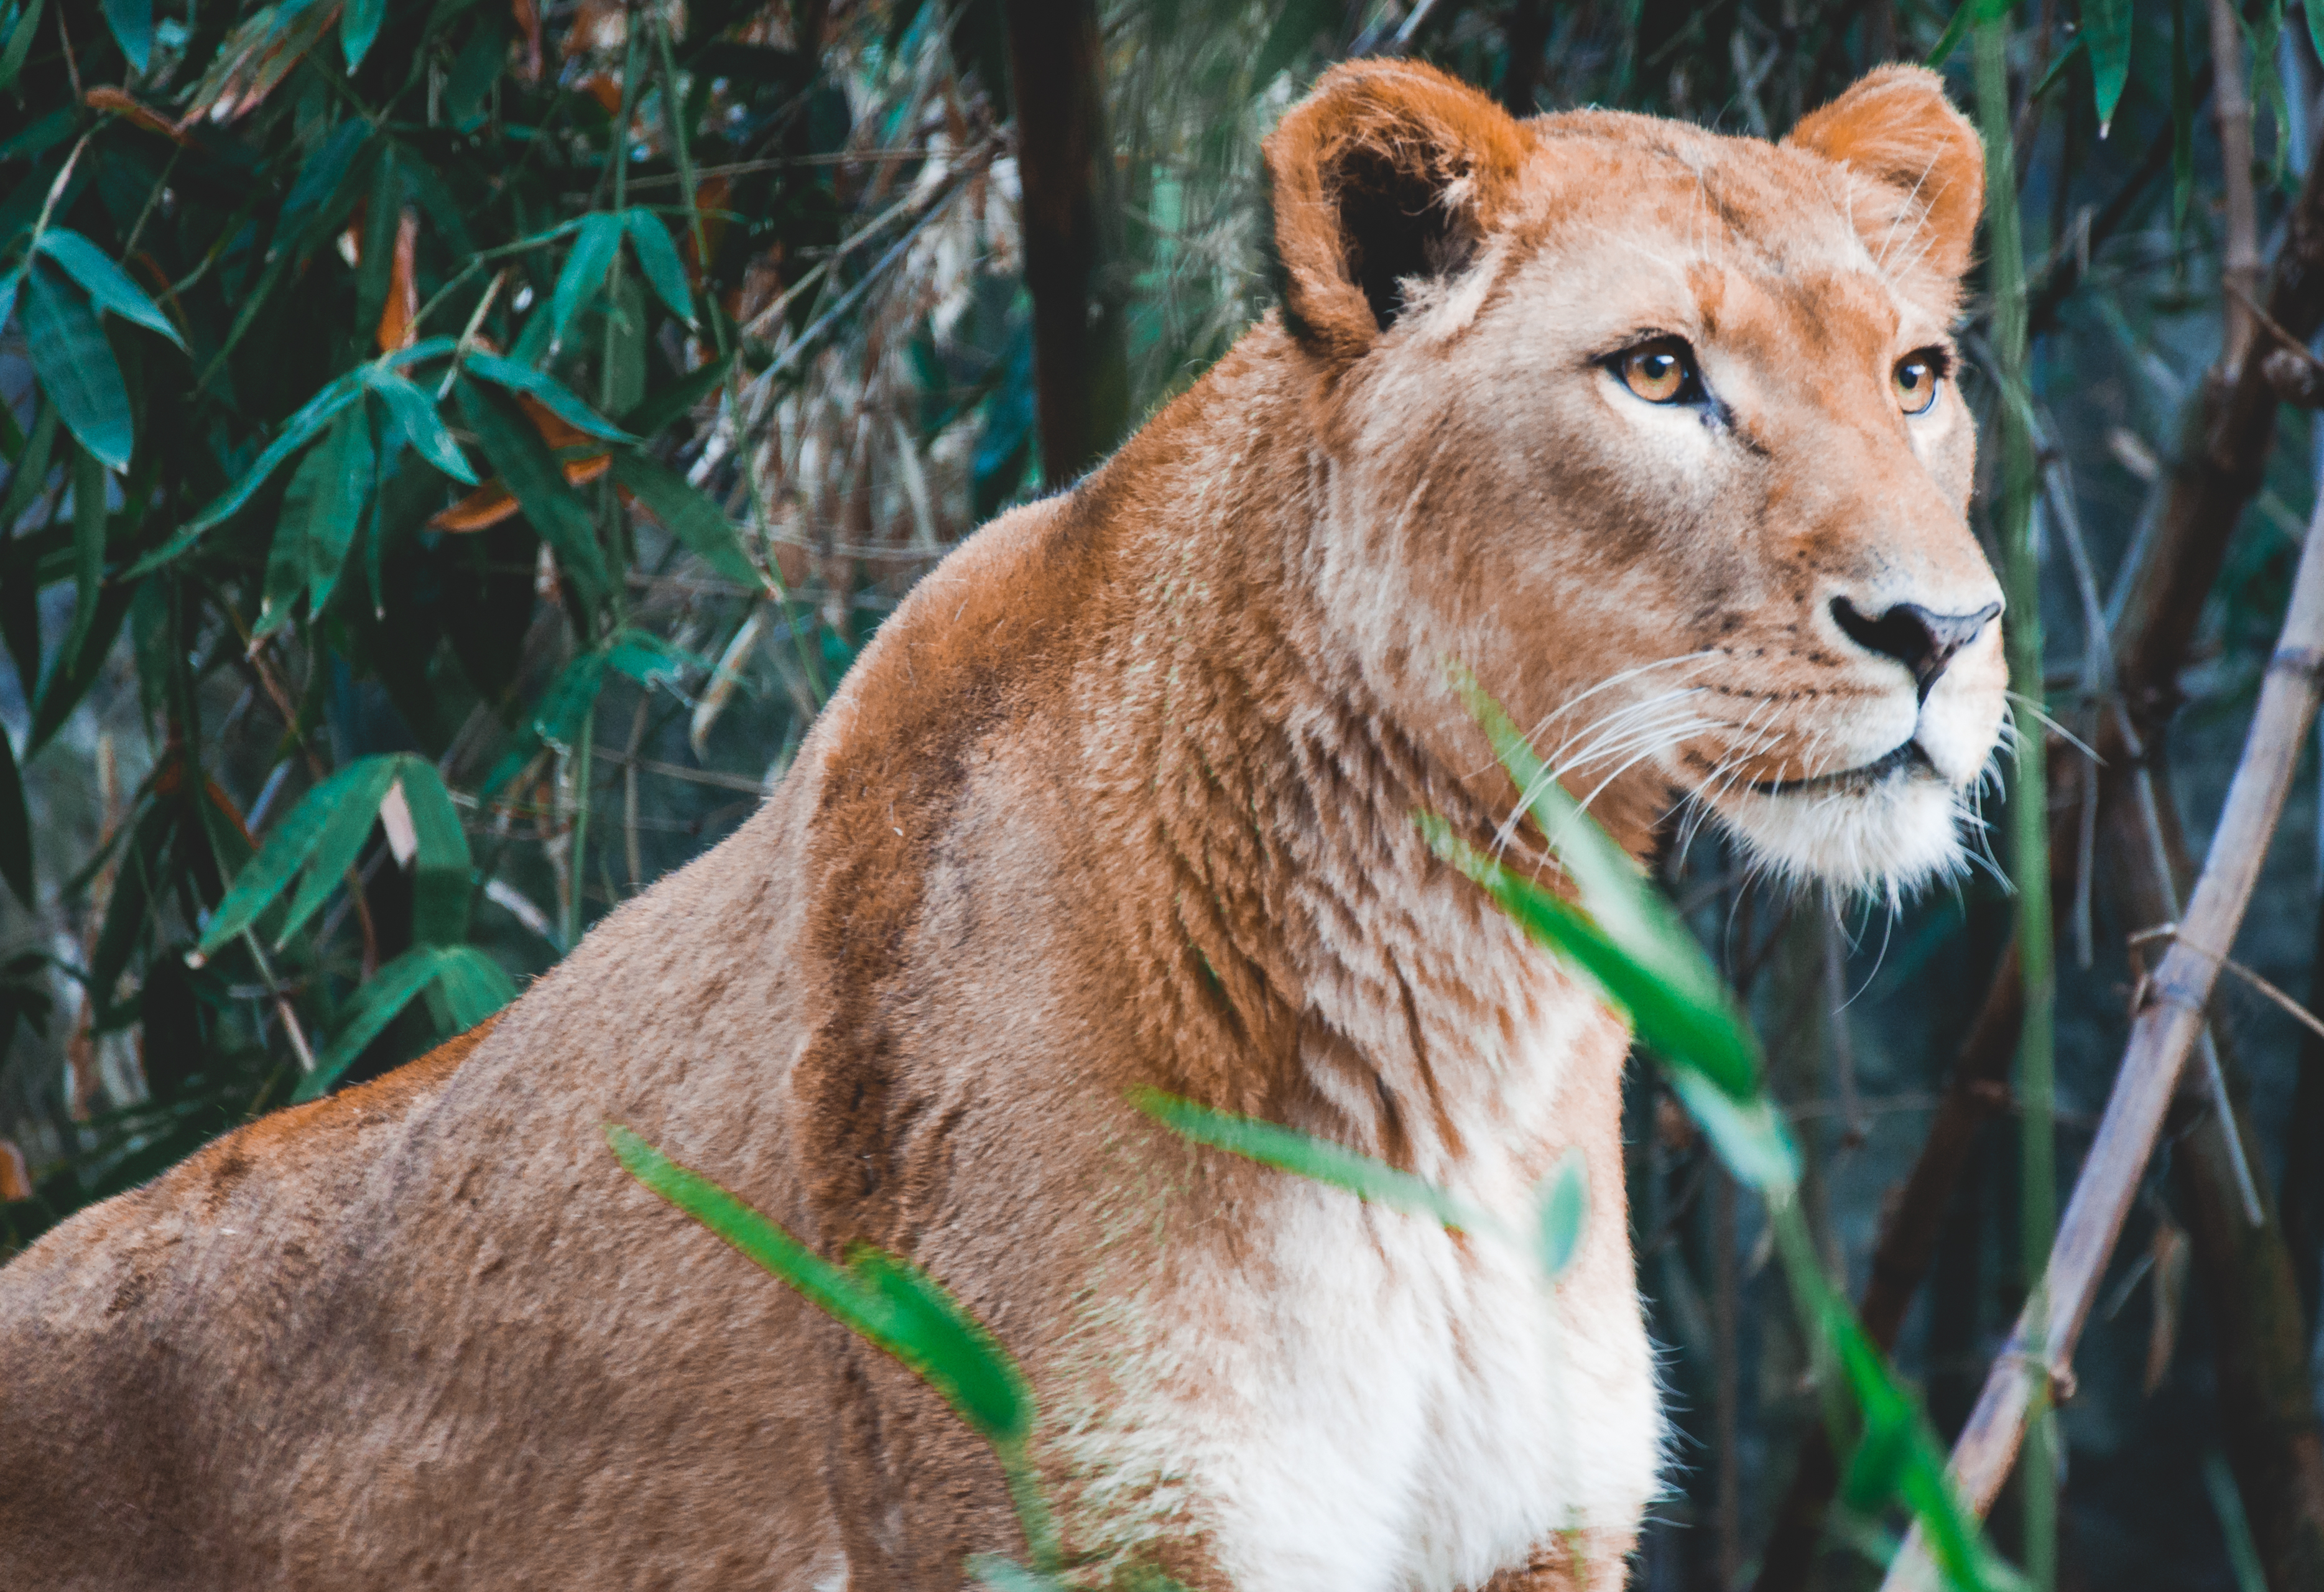 105923 download wallpaper Animals, Lioness, Lion, Predator, Big Cat screensavers and pictures for free